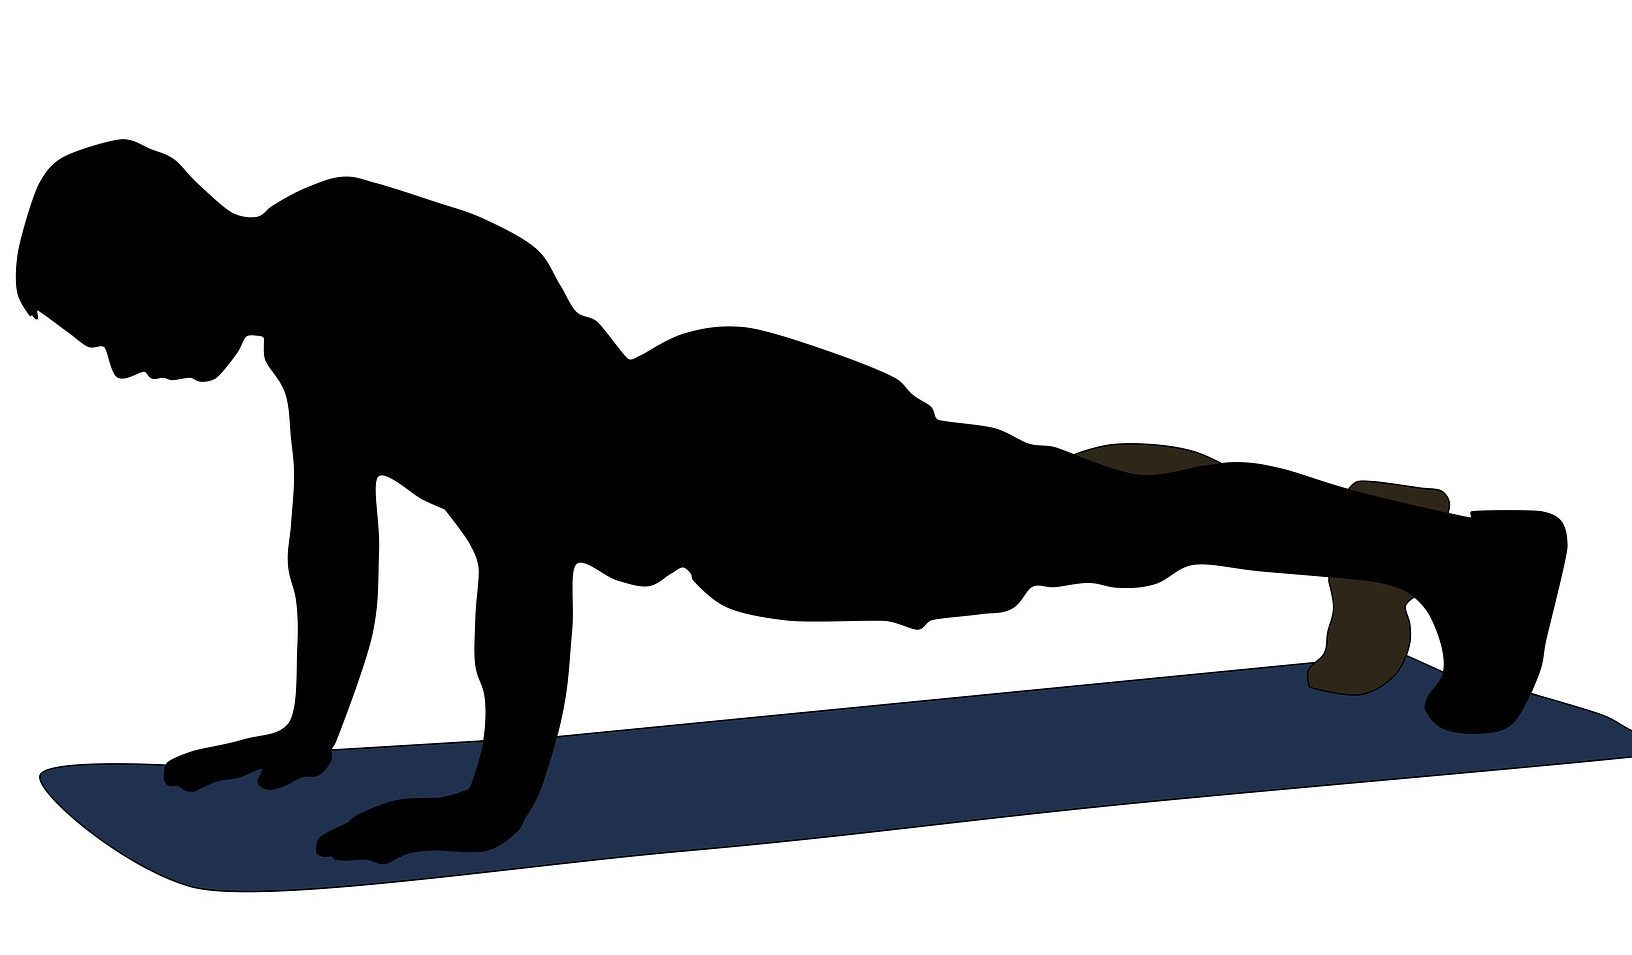 Plank Exercise Clipart.